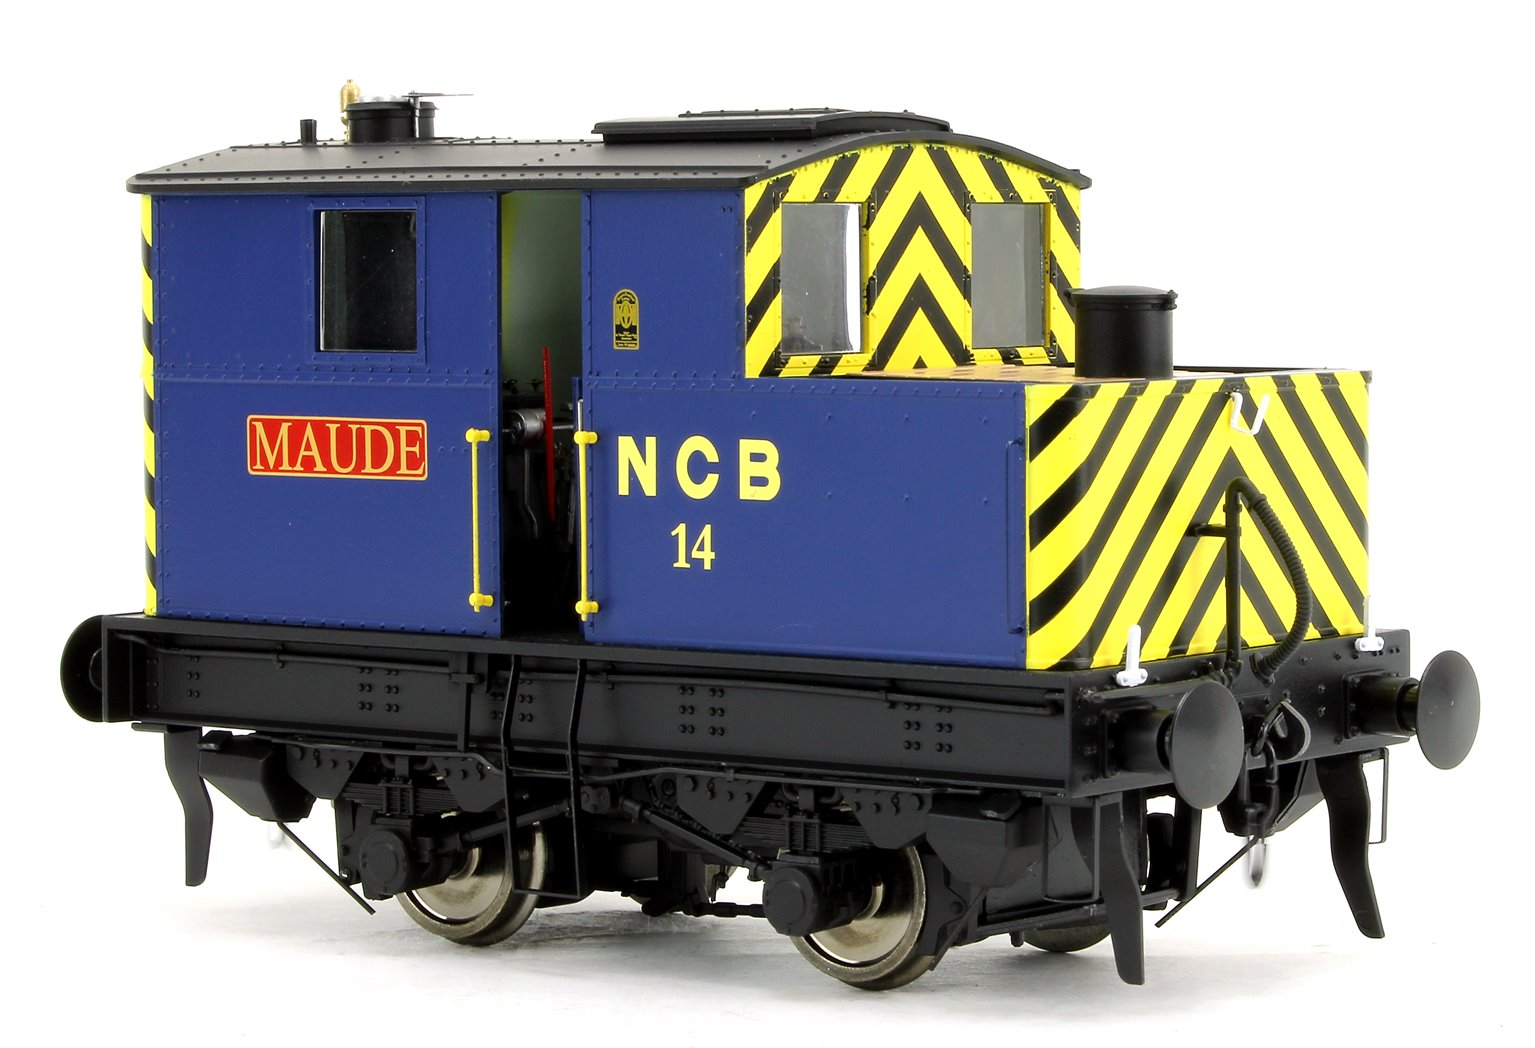 Sentinel 4wVB No.14 in National Coal Board livery 'Maude'